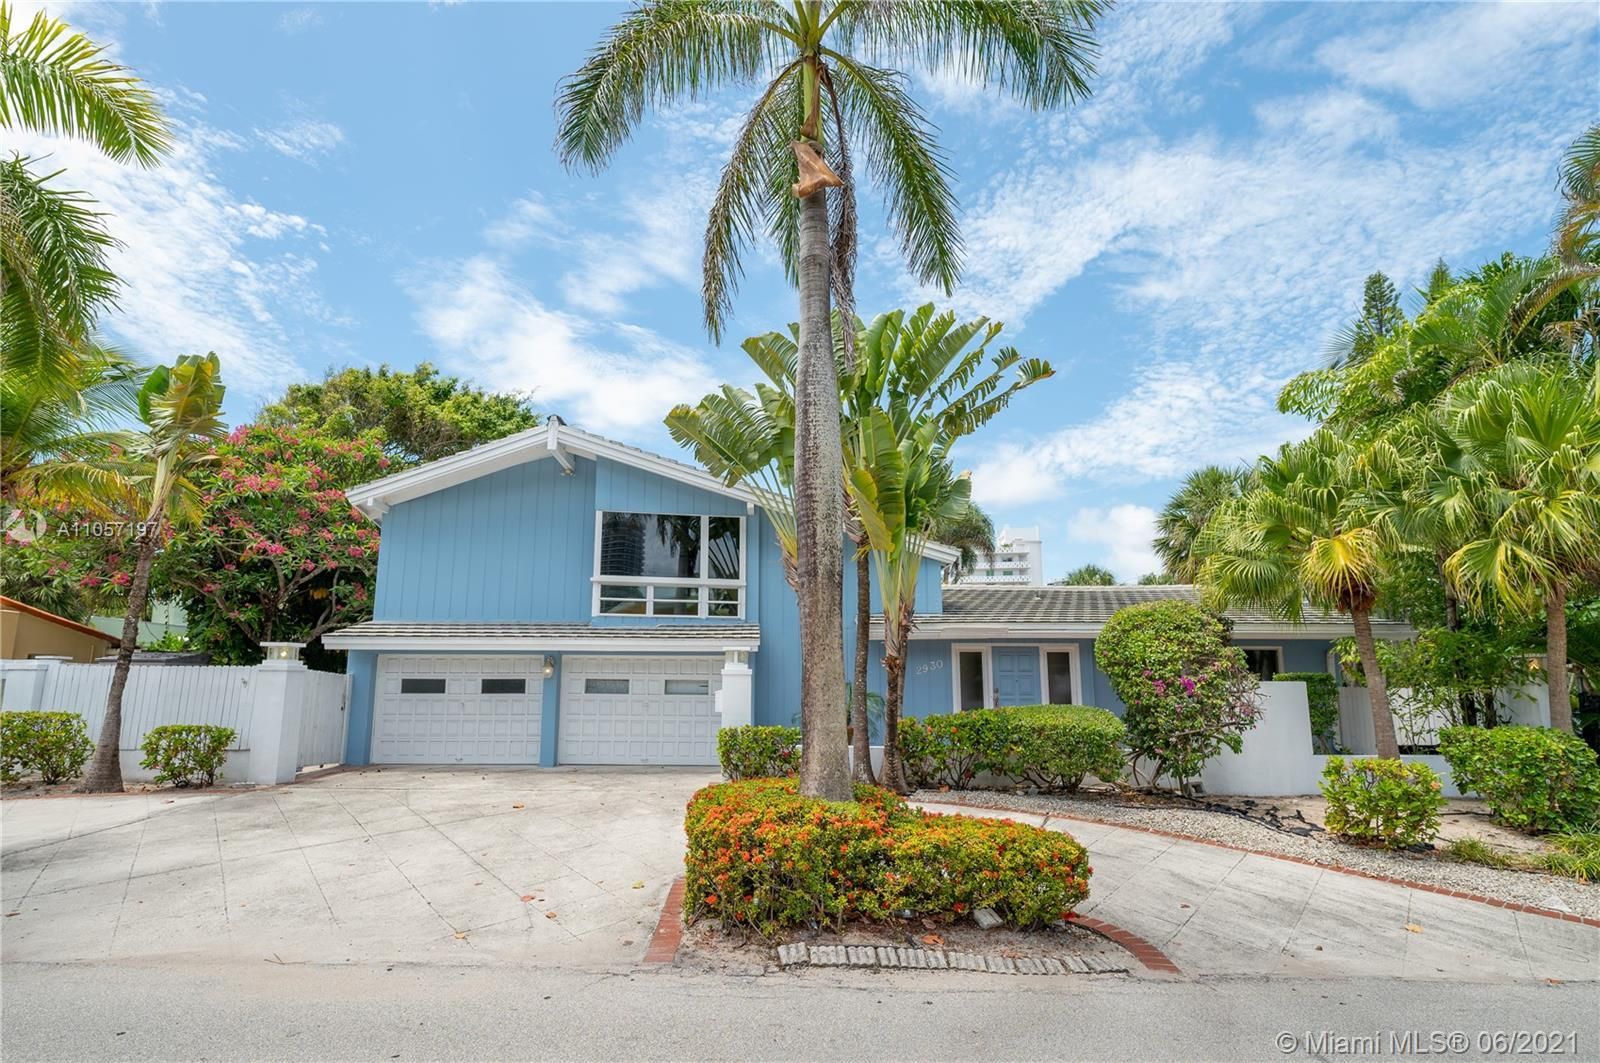 FAMILY, FRIENDS, FOREVER THE BEACH! Amazing opportunity to live life in the sun. Located on a corner